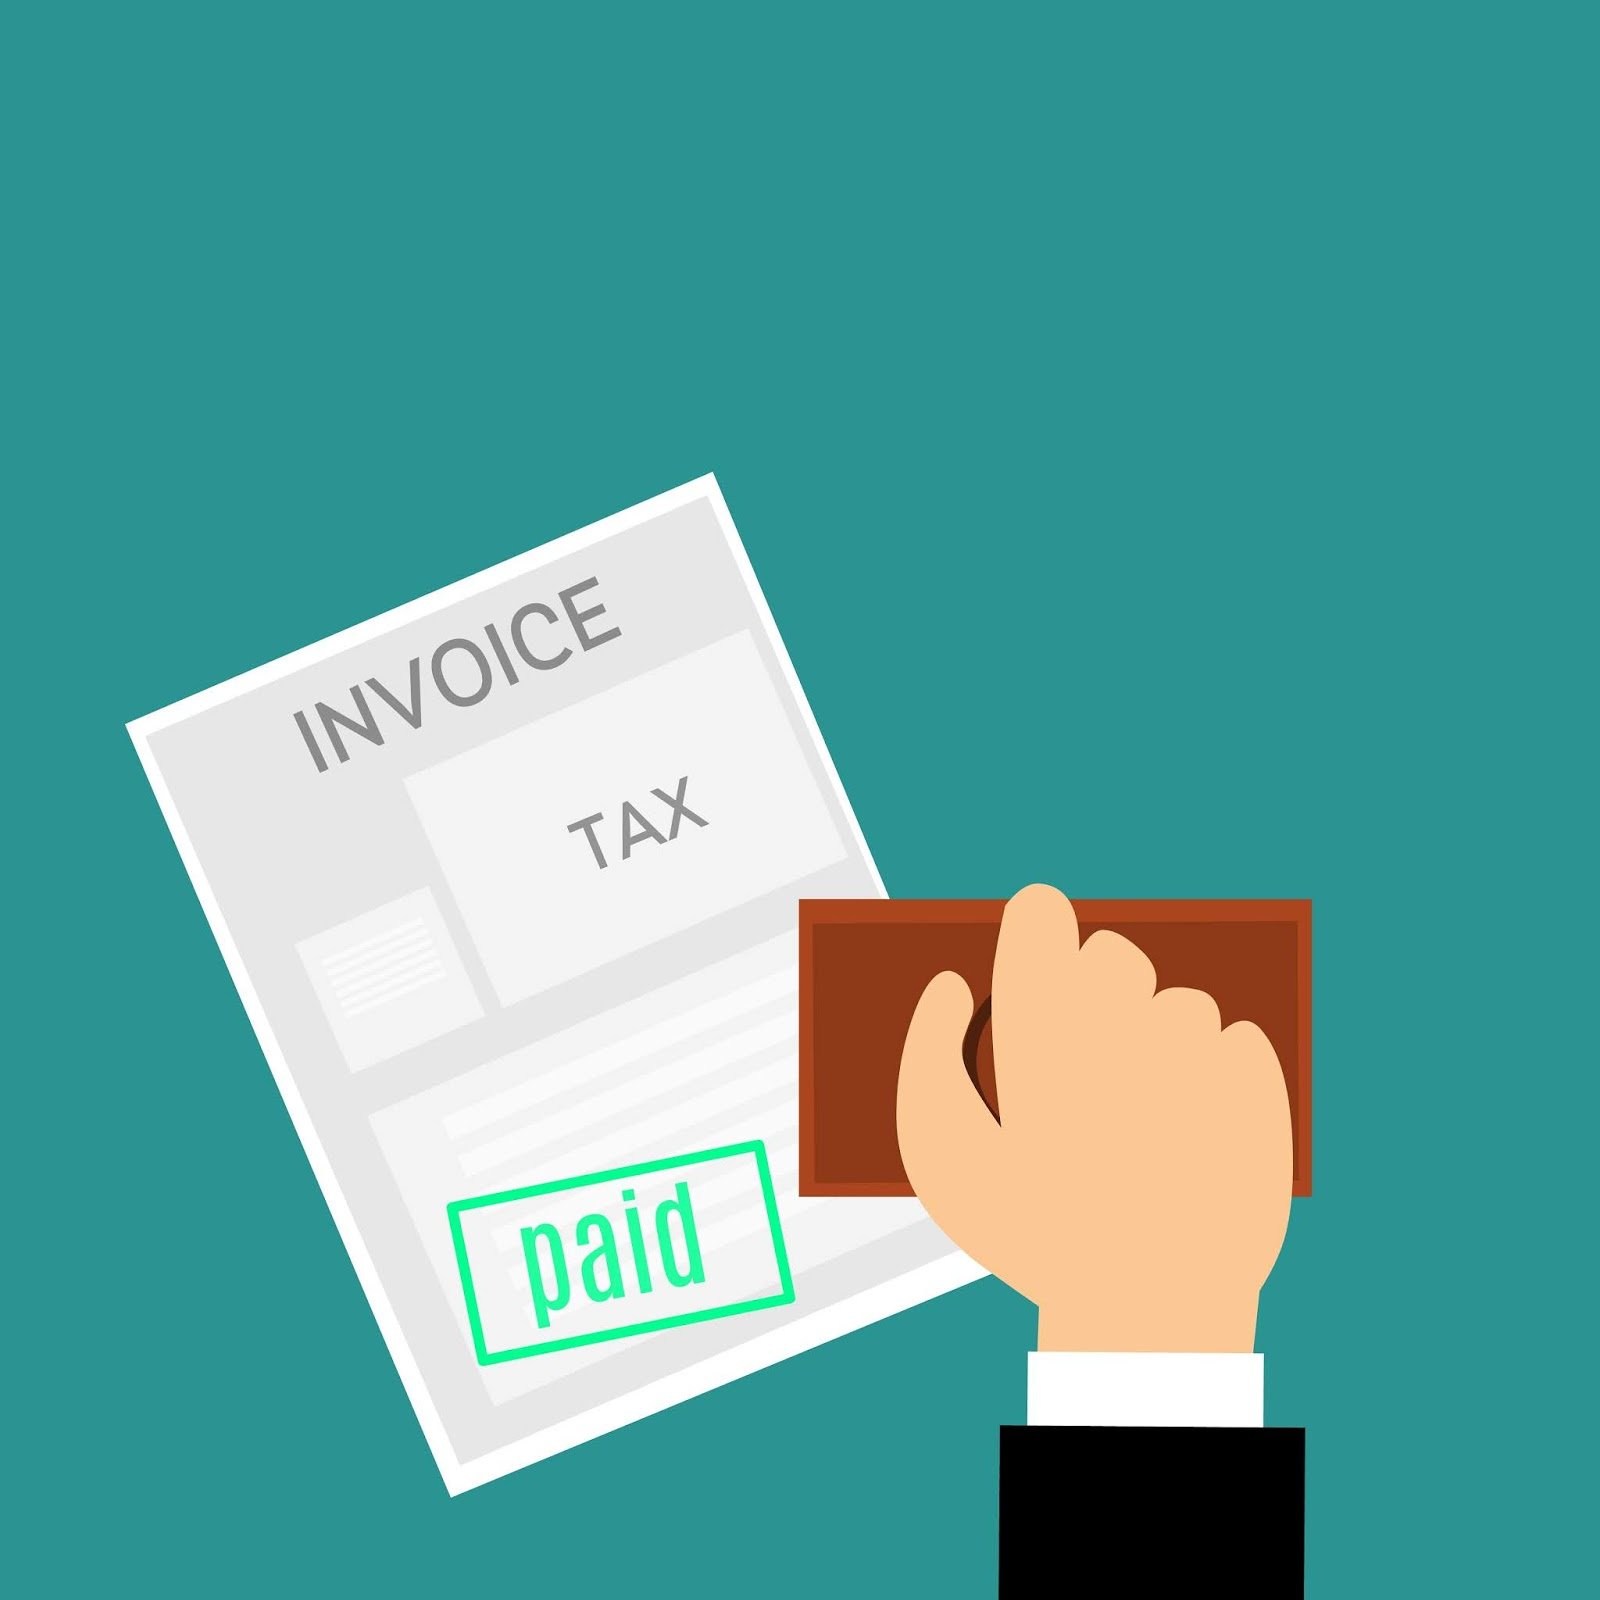 Download free illustrations of tax, invoice, paid - download free ...